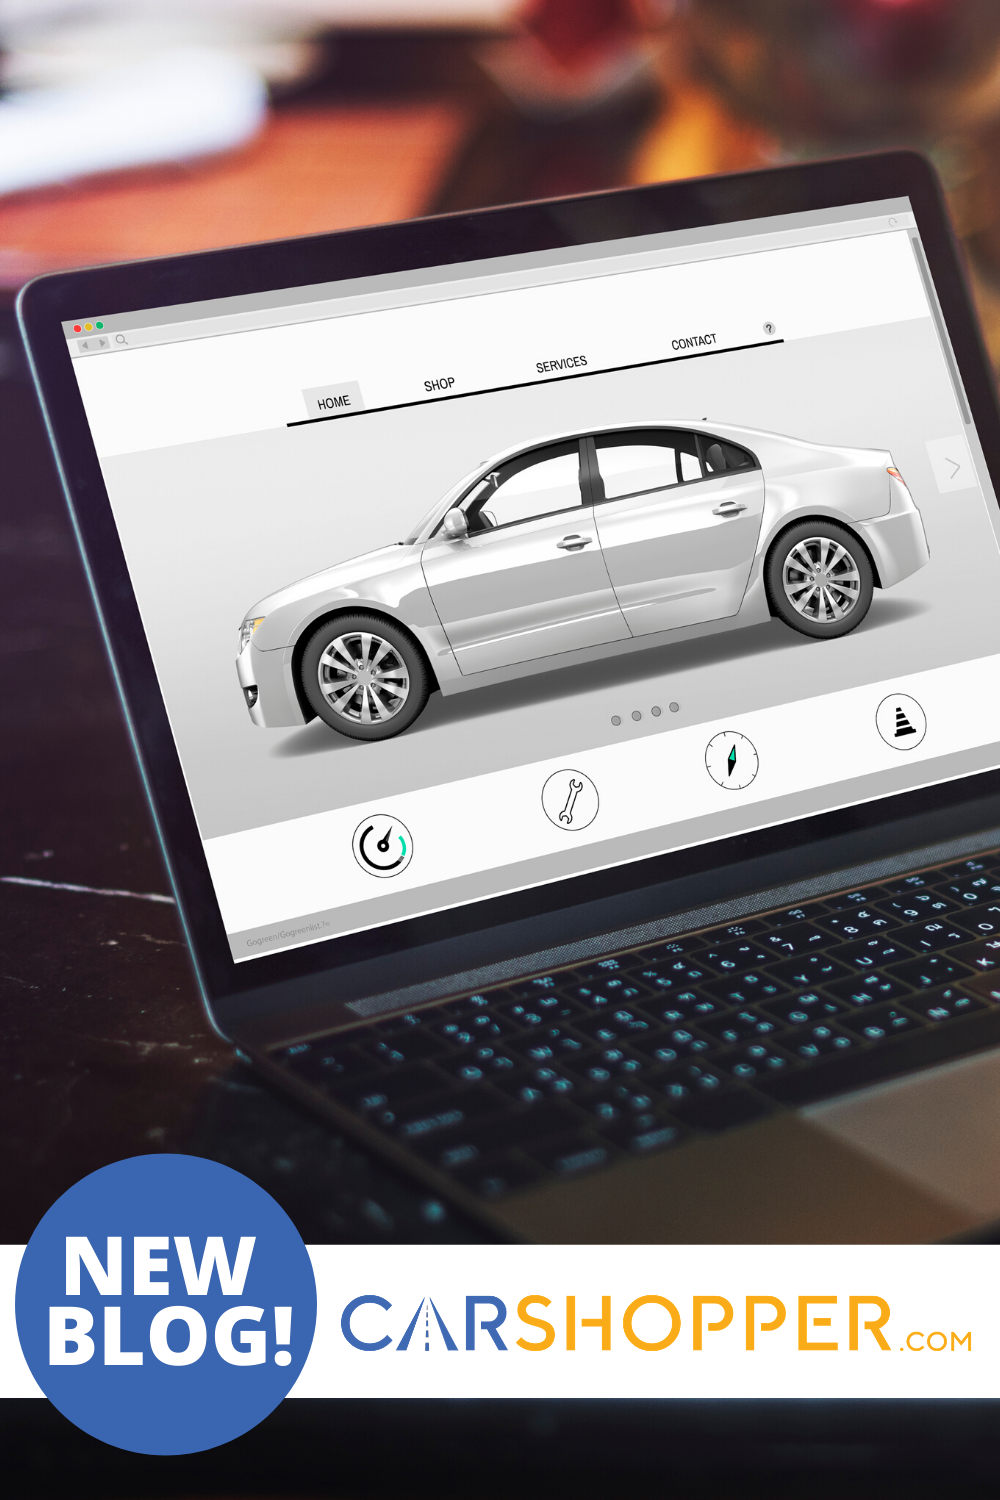 From The Carshopper Blog We Compare The Costs Of Buying New Vs Used Vehicles And Discuss Loan Options For Both In 2020 New And Used Cars New Cars Used Cars